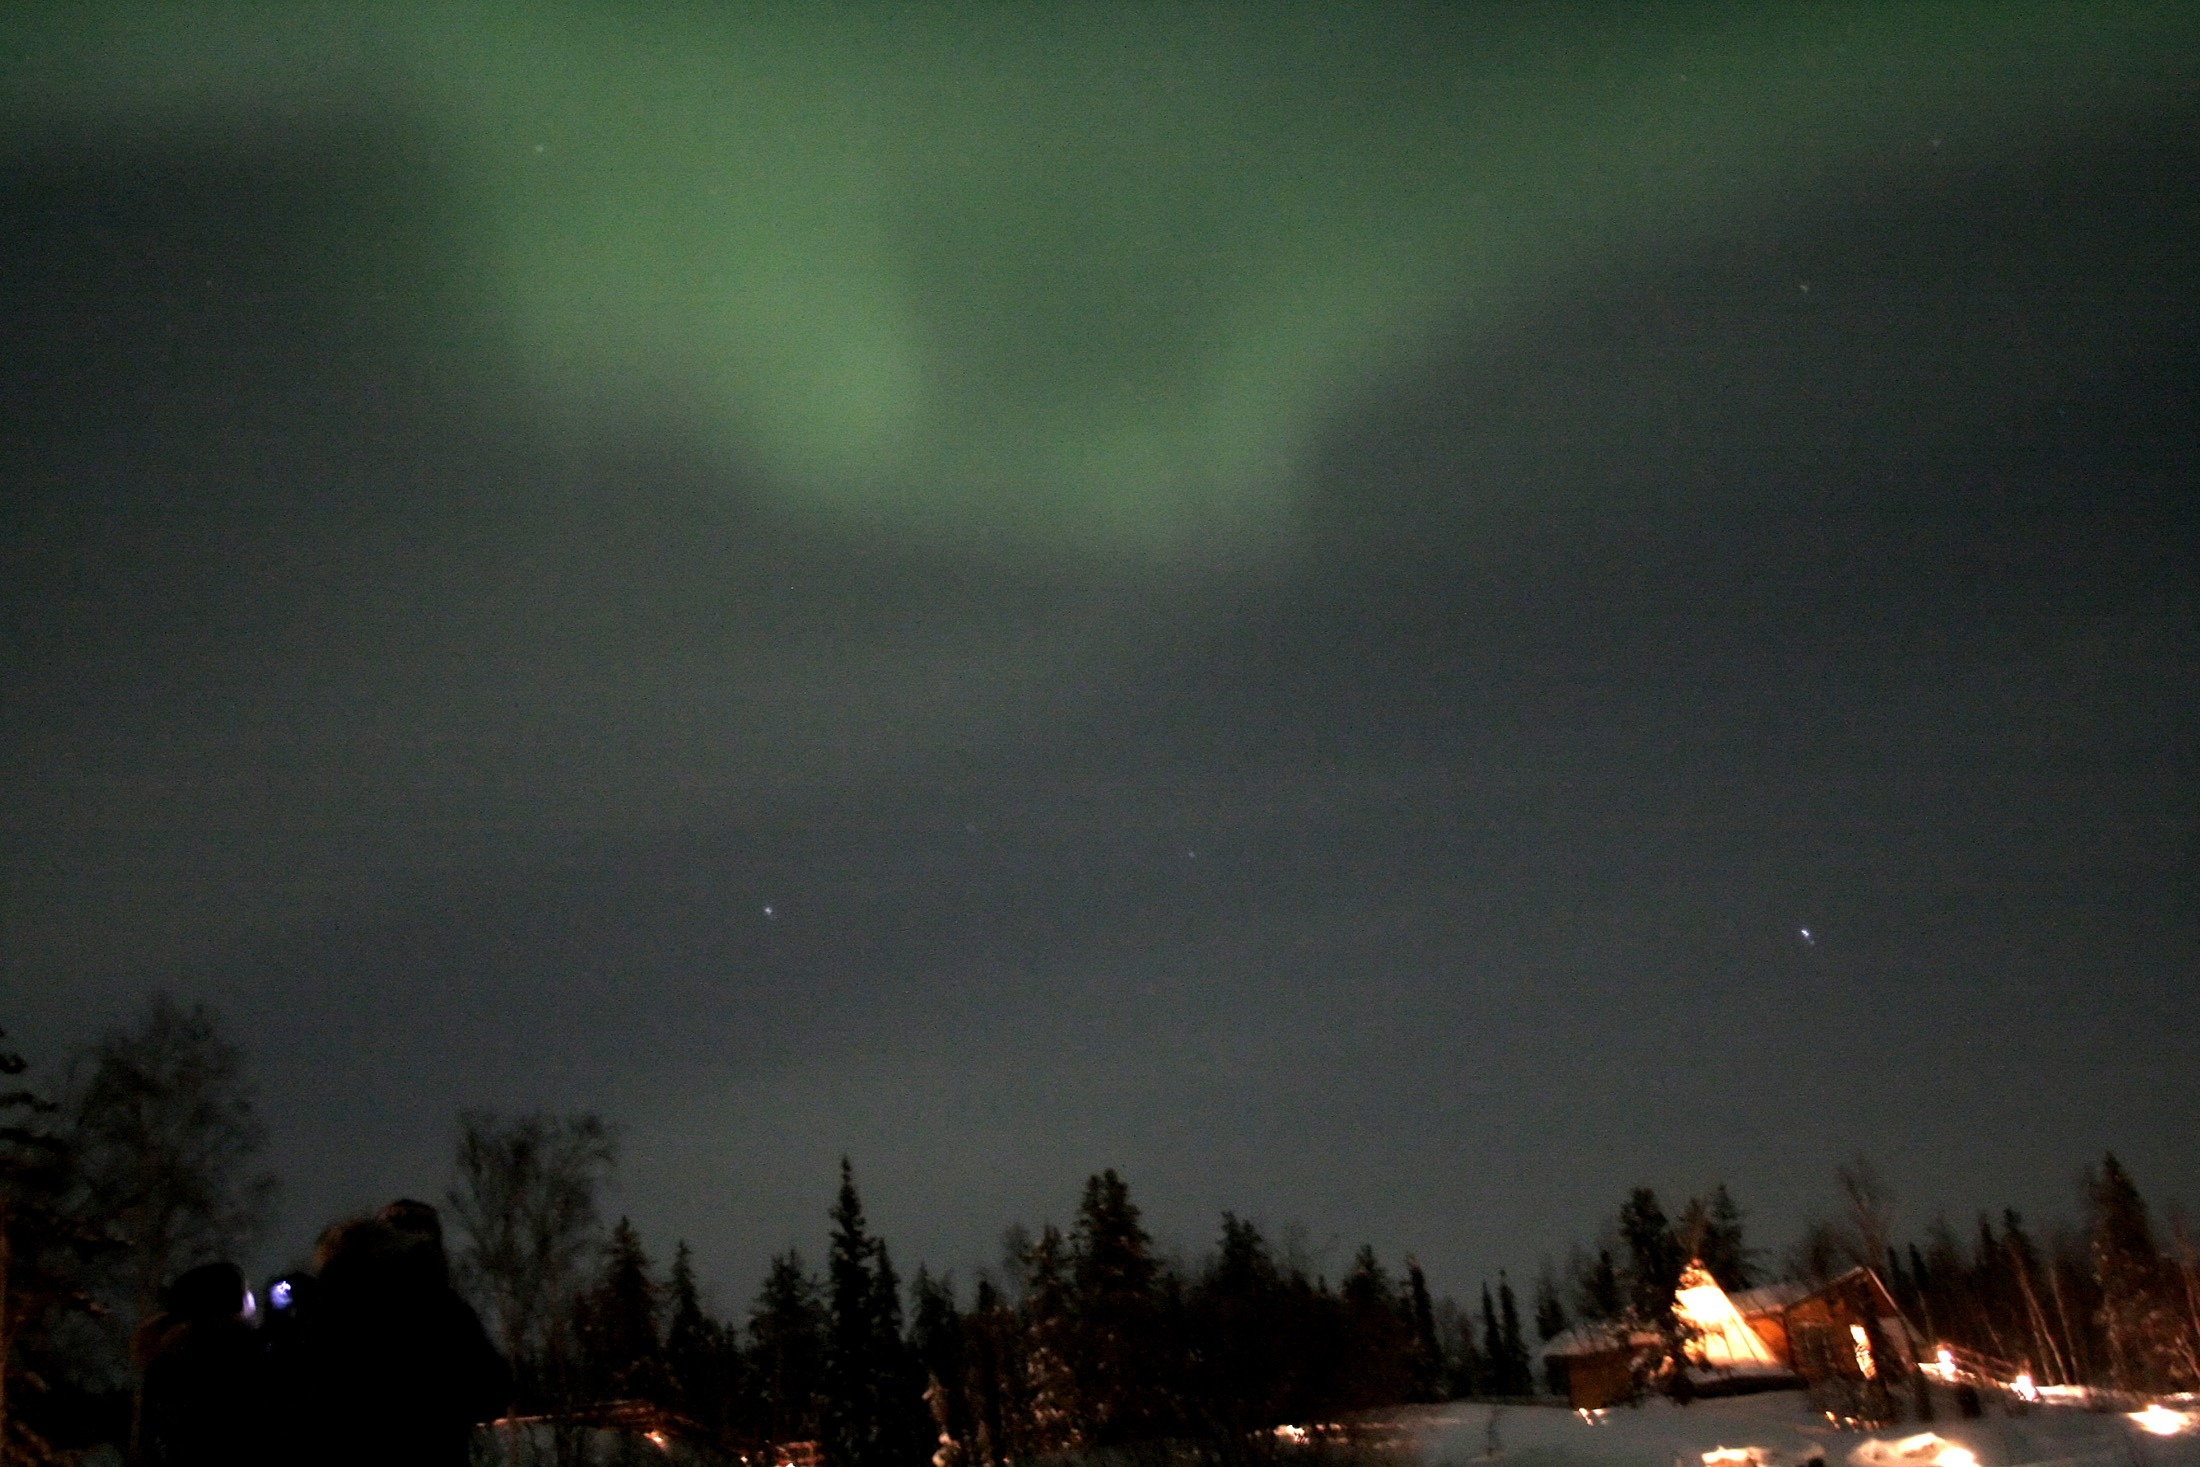 The Northern Lights appear in the sky over Canada's Northwest Territories in this picture taken February 14.